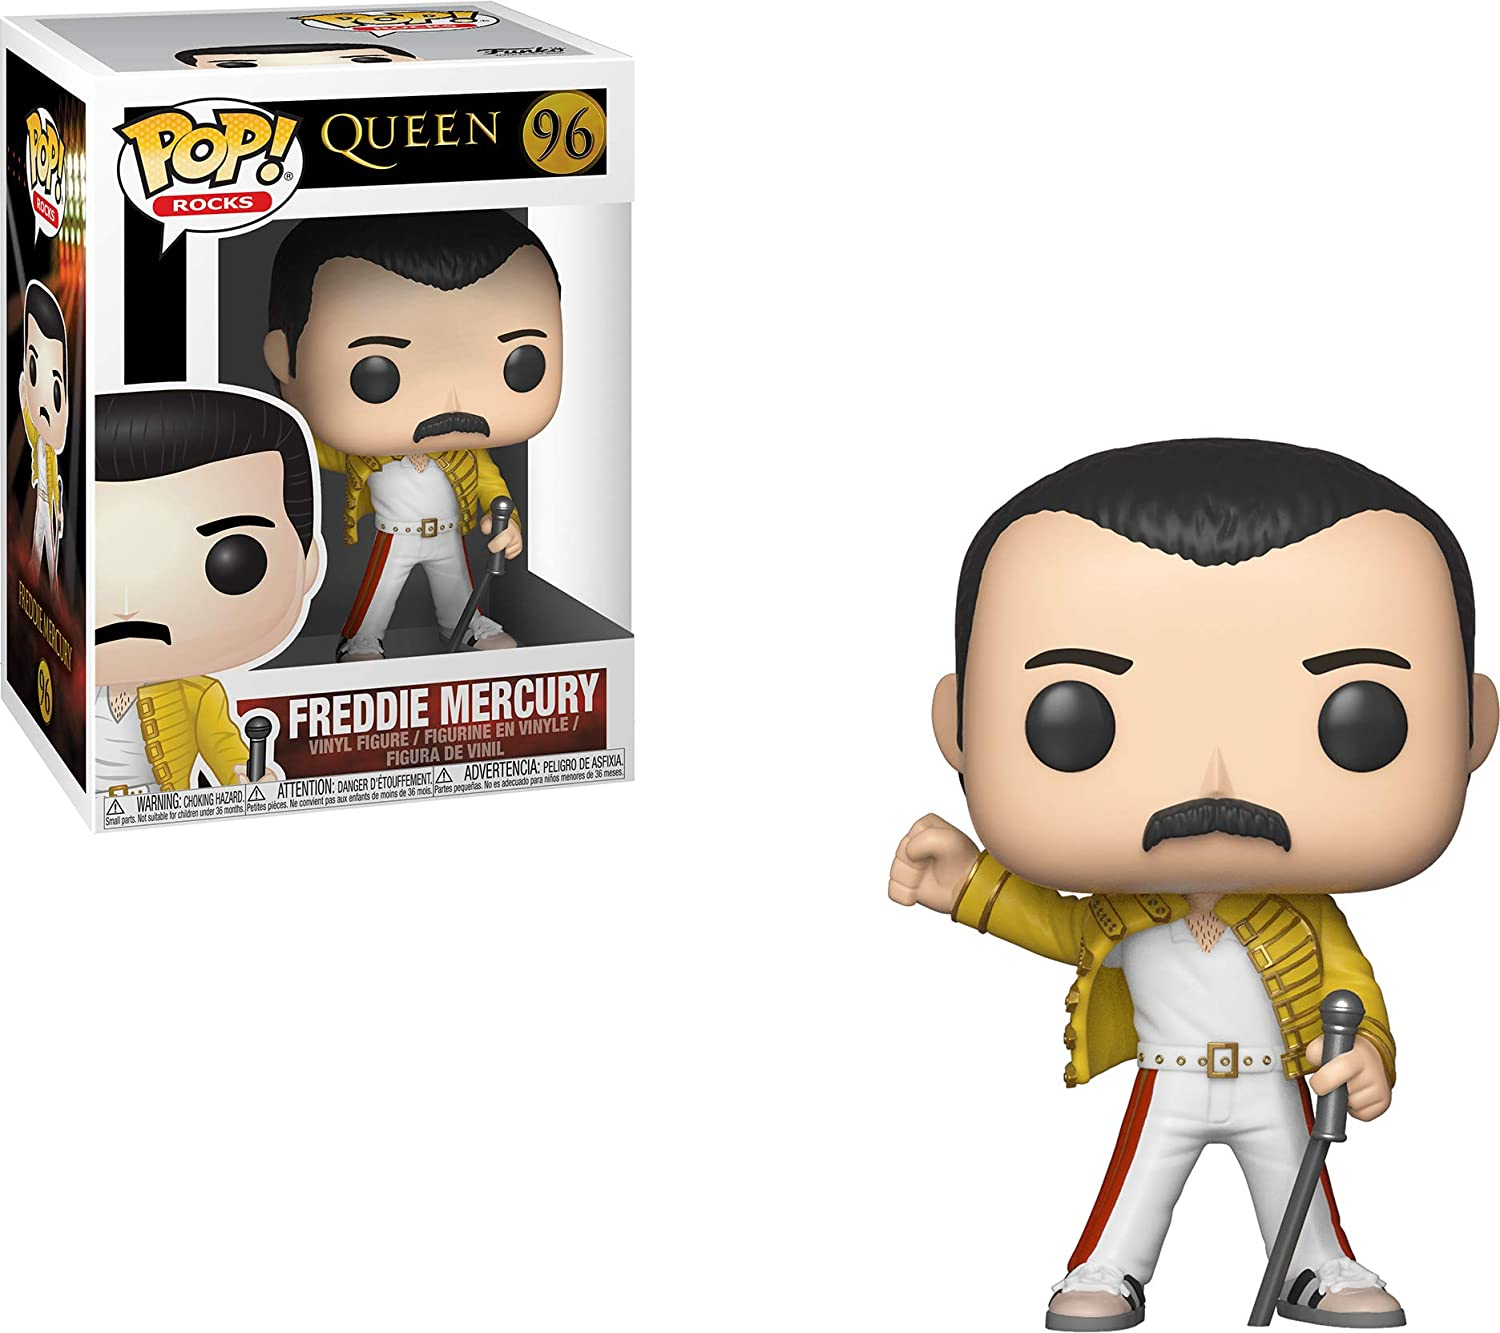 Pop! Vinyl: Rocks: Queen: Freddie Mercury (Wembley 1986): Queen, Freddie Mercury: Amazon.es: Juguetes y juegos